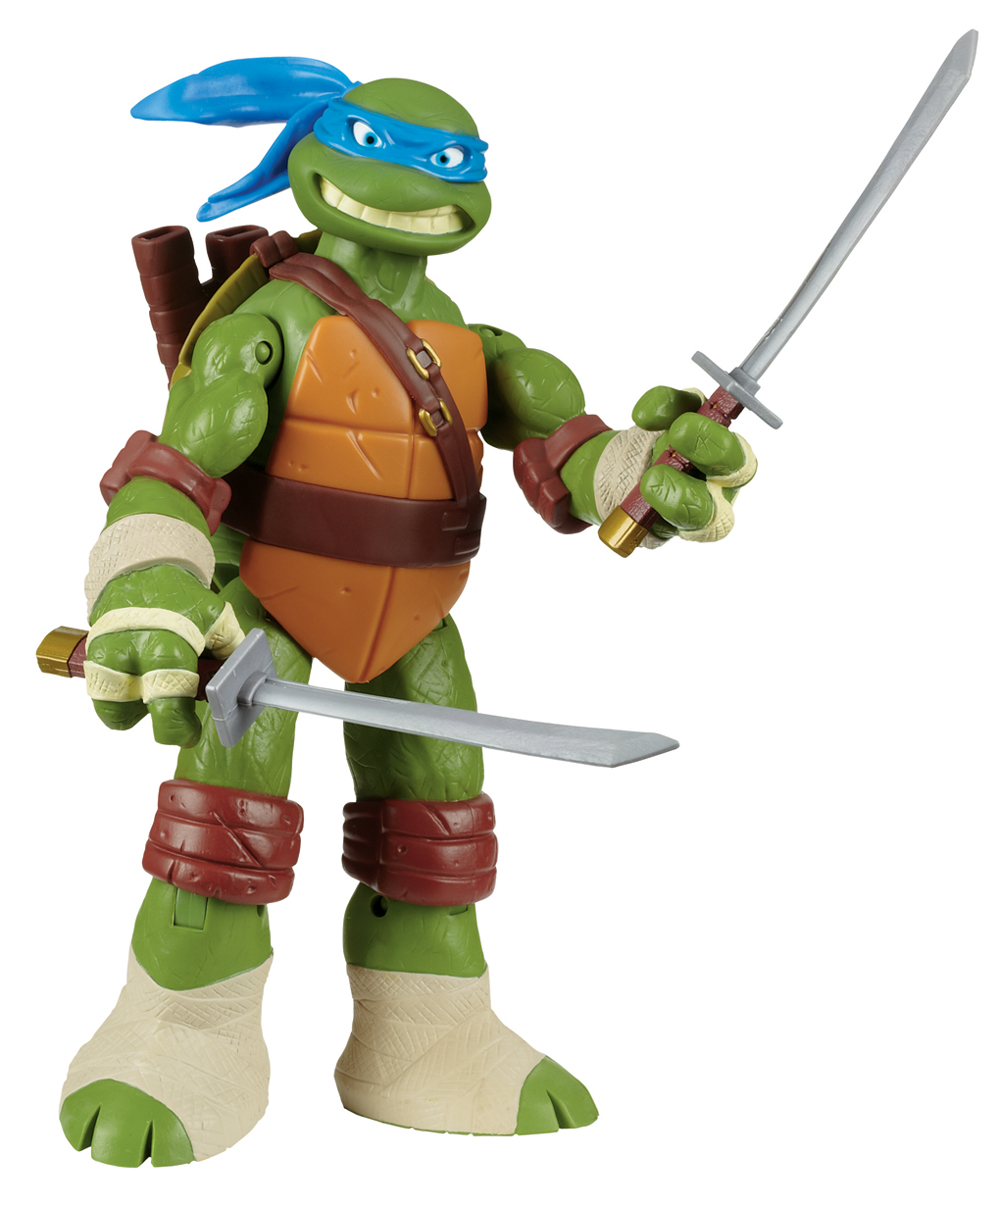 New TMNT Toys Arrive in Stores | Animation Magazine